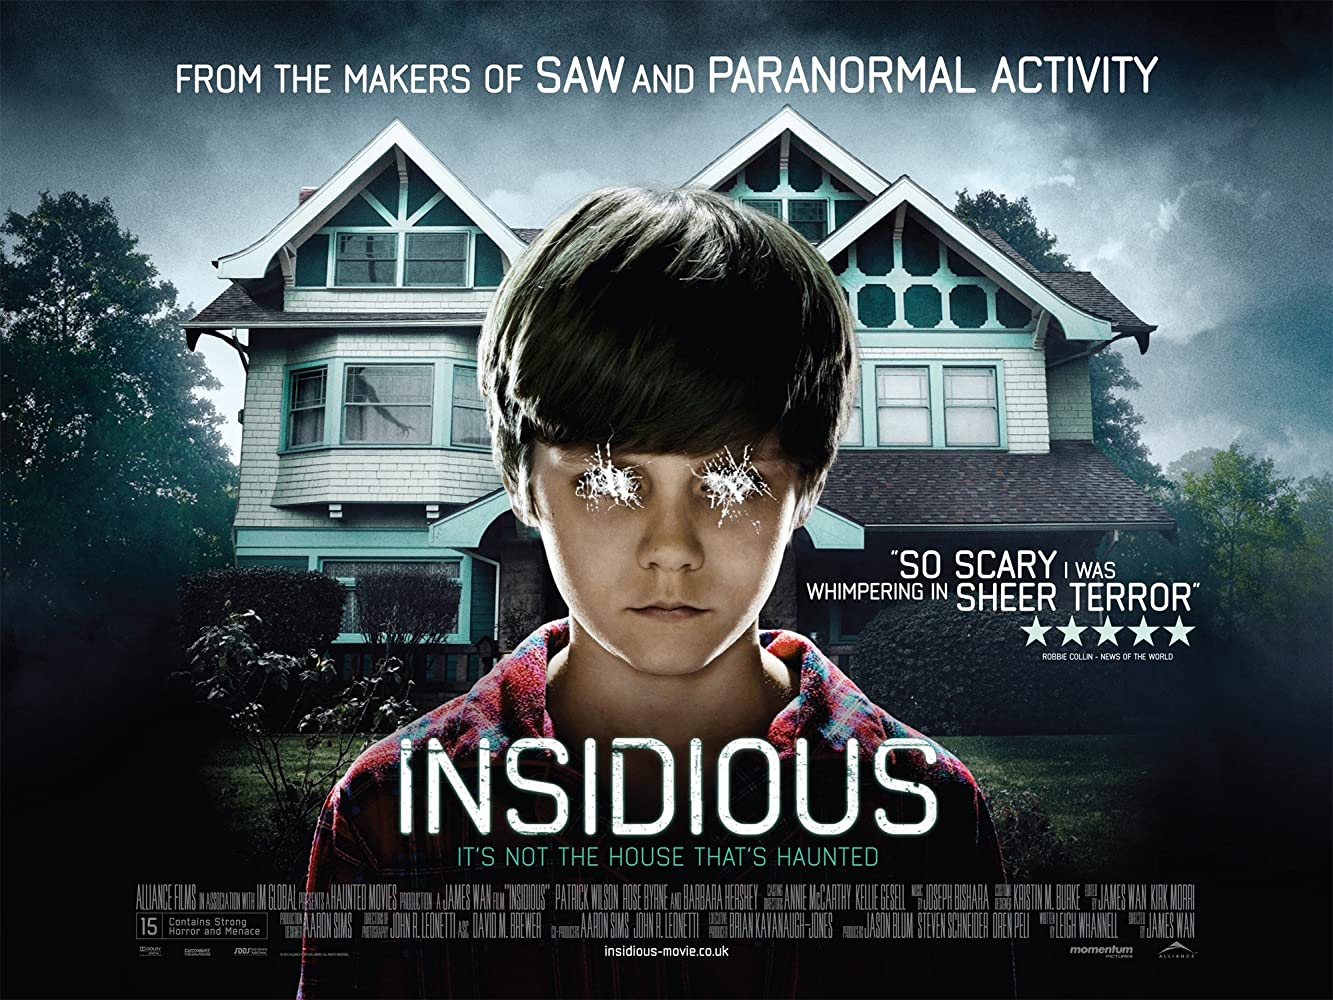 Insidious (2010) Movie in Hindi Dubbed Dual Audio 720p BRRip Watch Online Free Download At Movies365.in